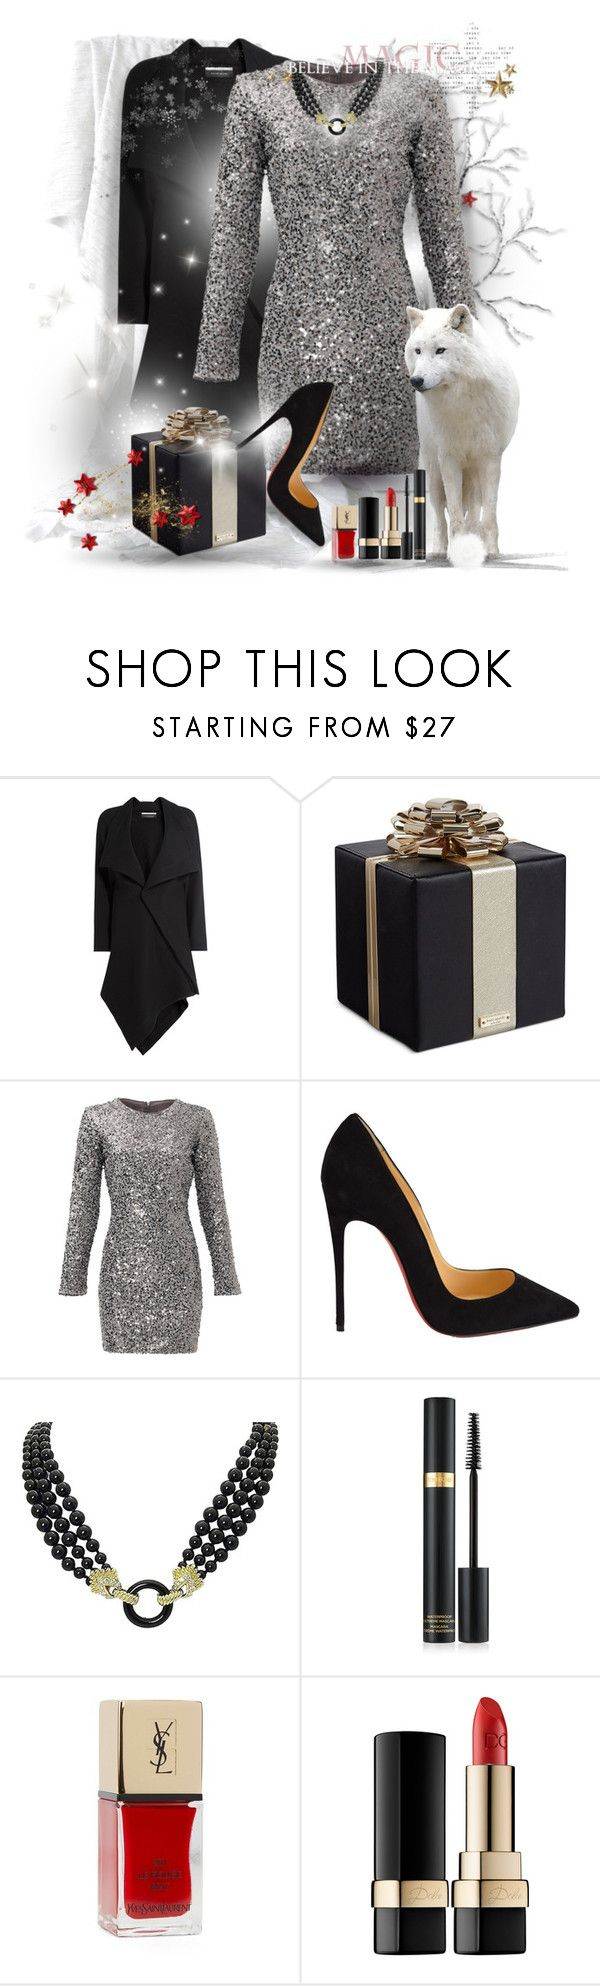 - 1 - Black - Bag & Shoes by falticska-cerasella on Polyvore featuring Slate & Willow, Roland Mouret, Christian Louboutin, Kate Spade, Van Cleef & Arpels and Lord & Taylor